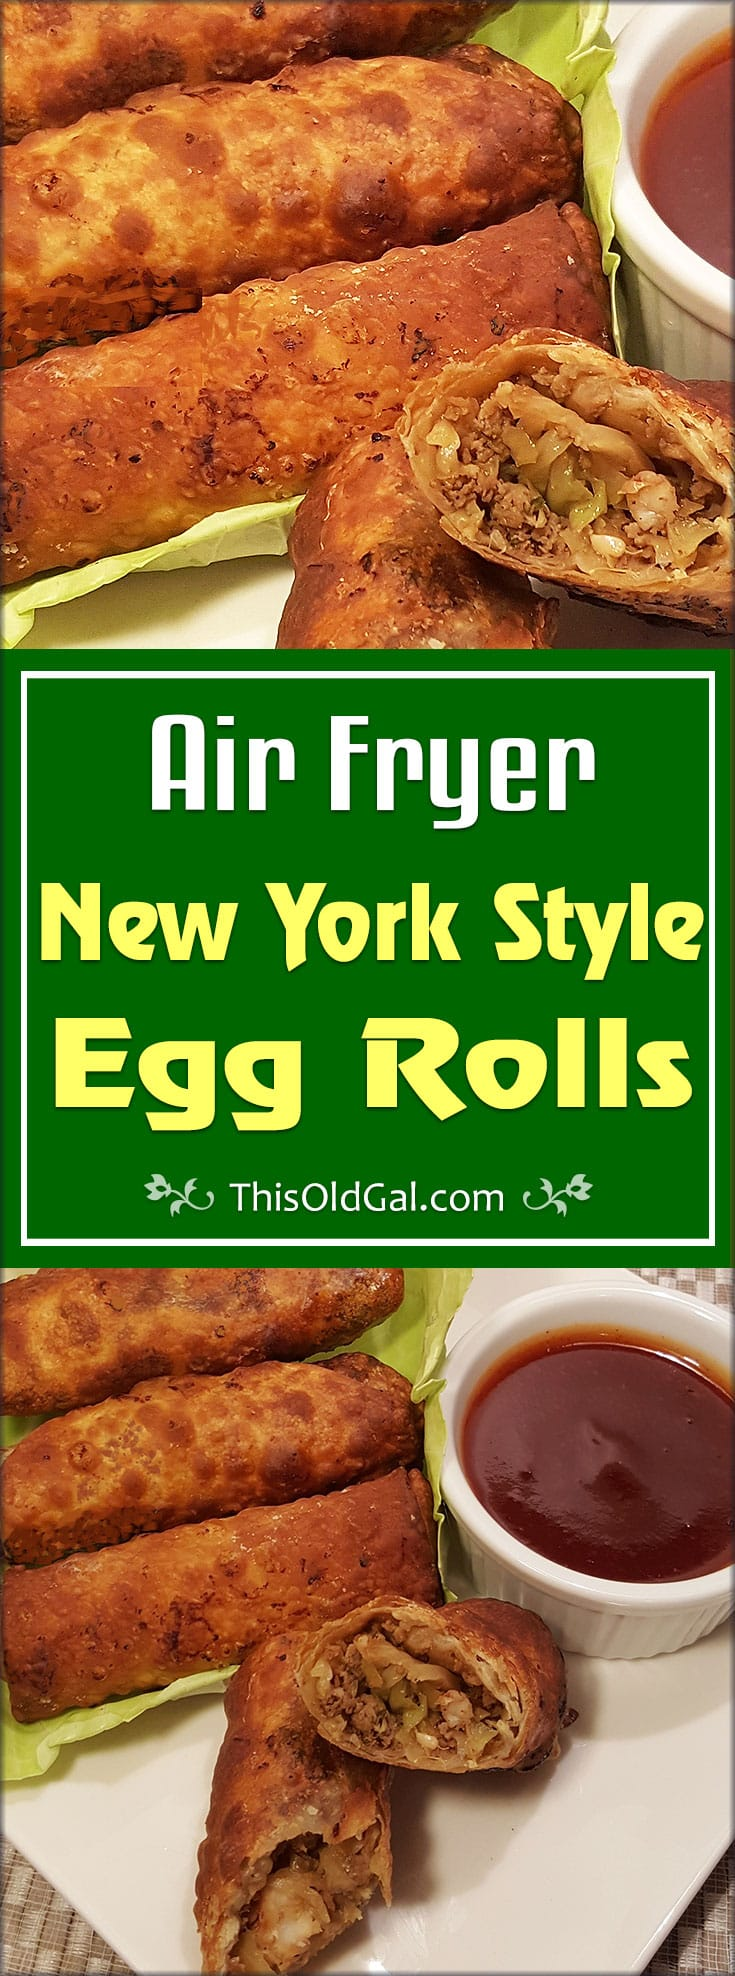 Air Fryer New York Style Egg Rolls (Shrimp & Pork)